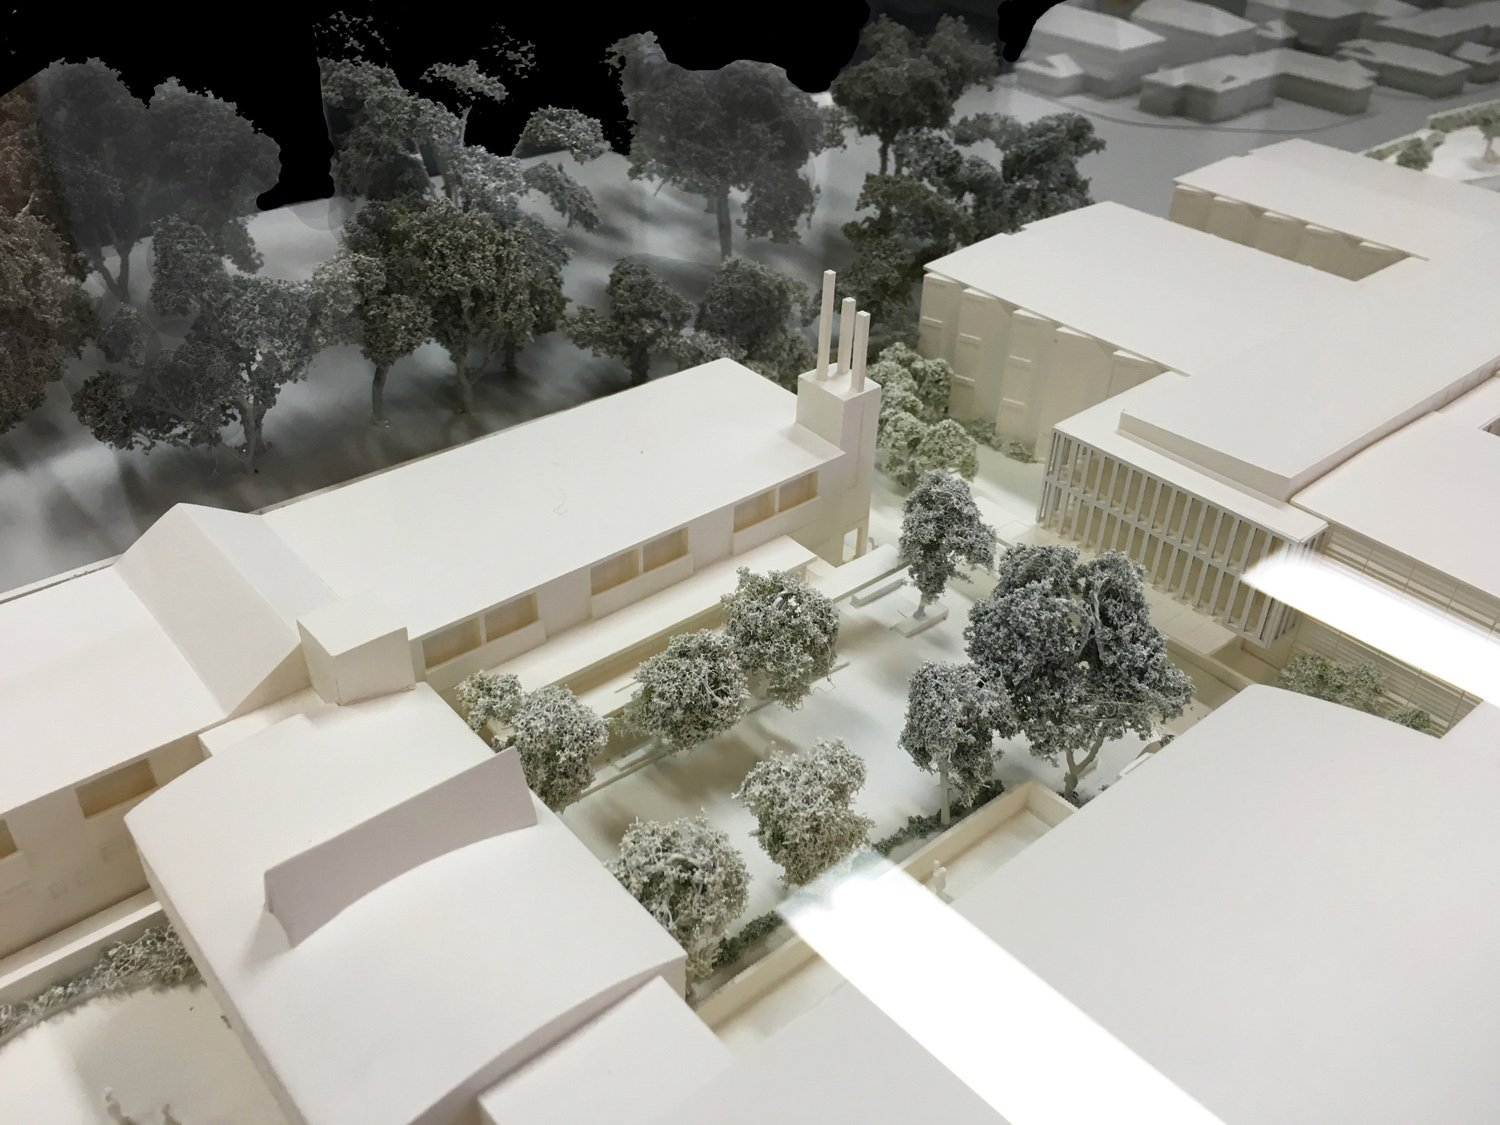 Village Square, Chapel and Residential Aged Care (model) Kink Studio